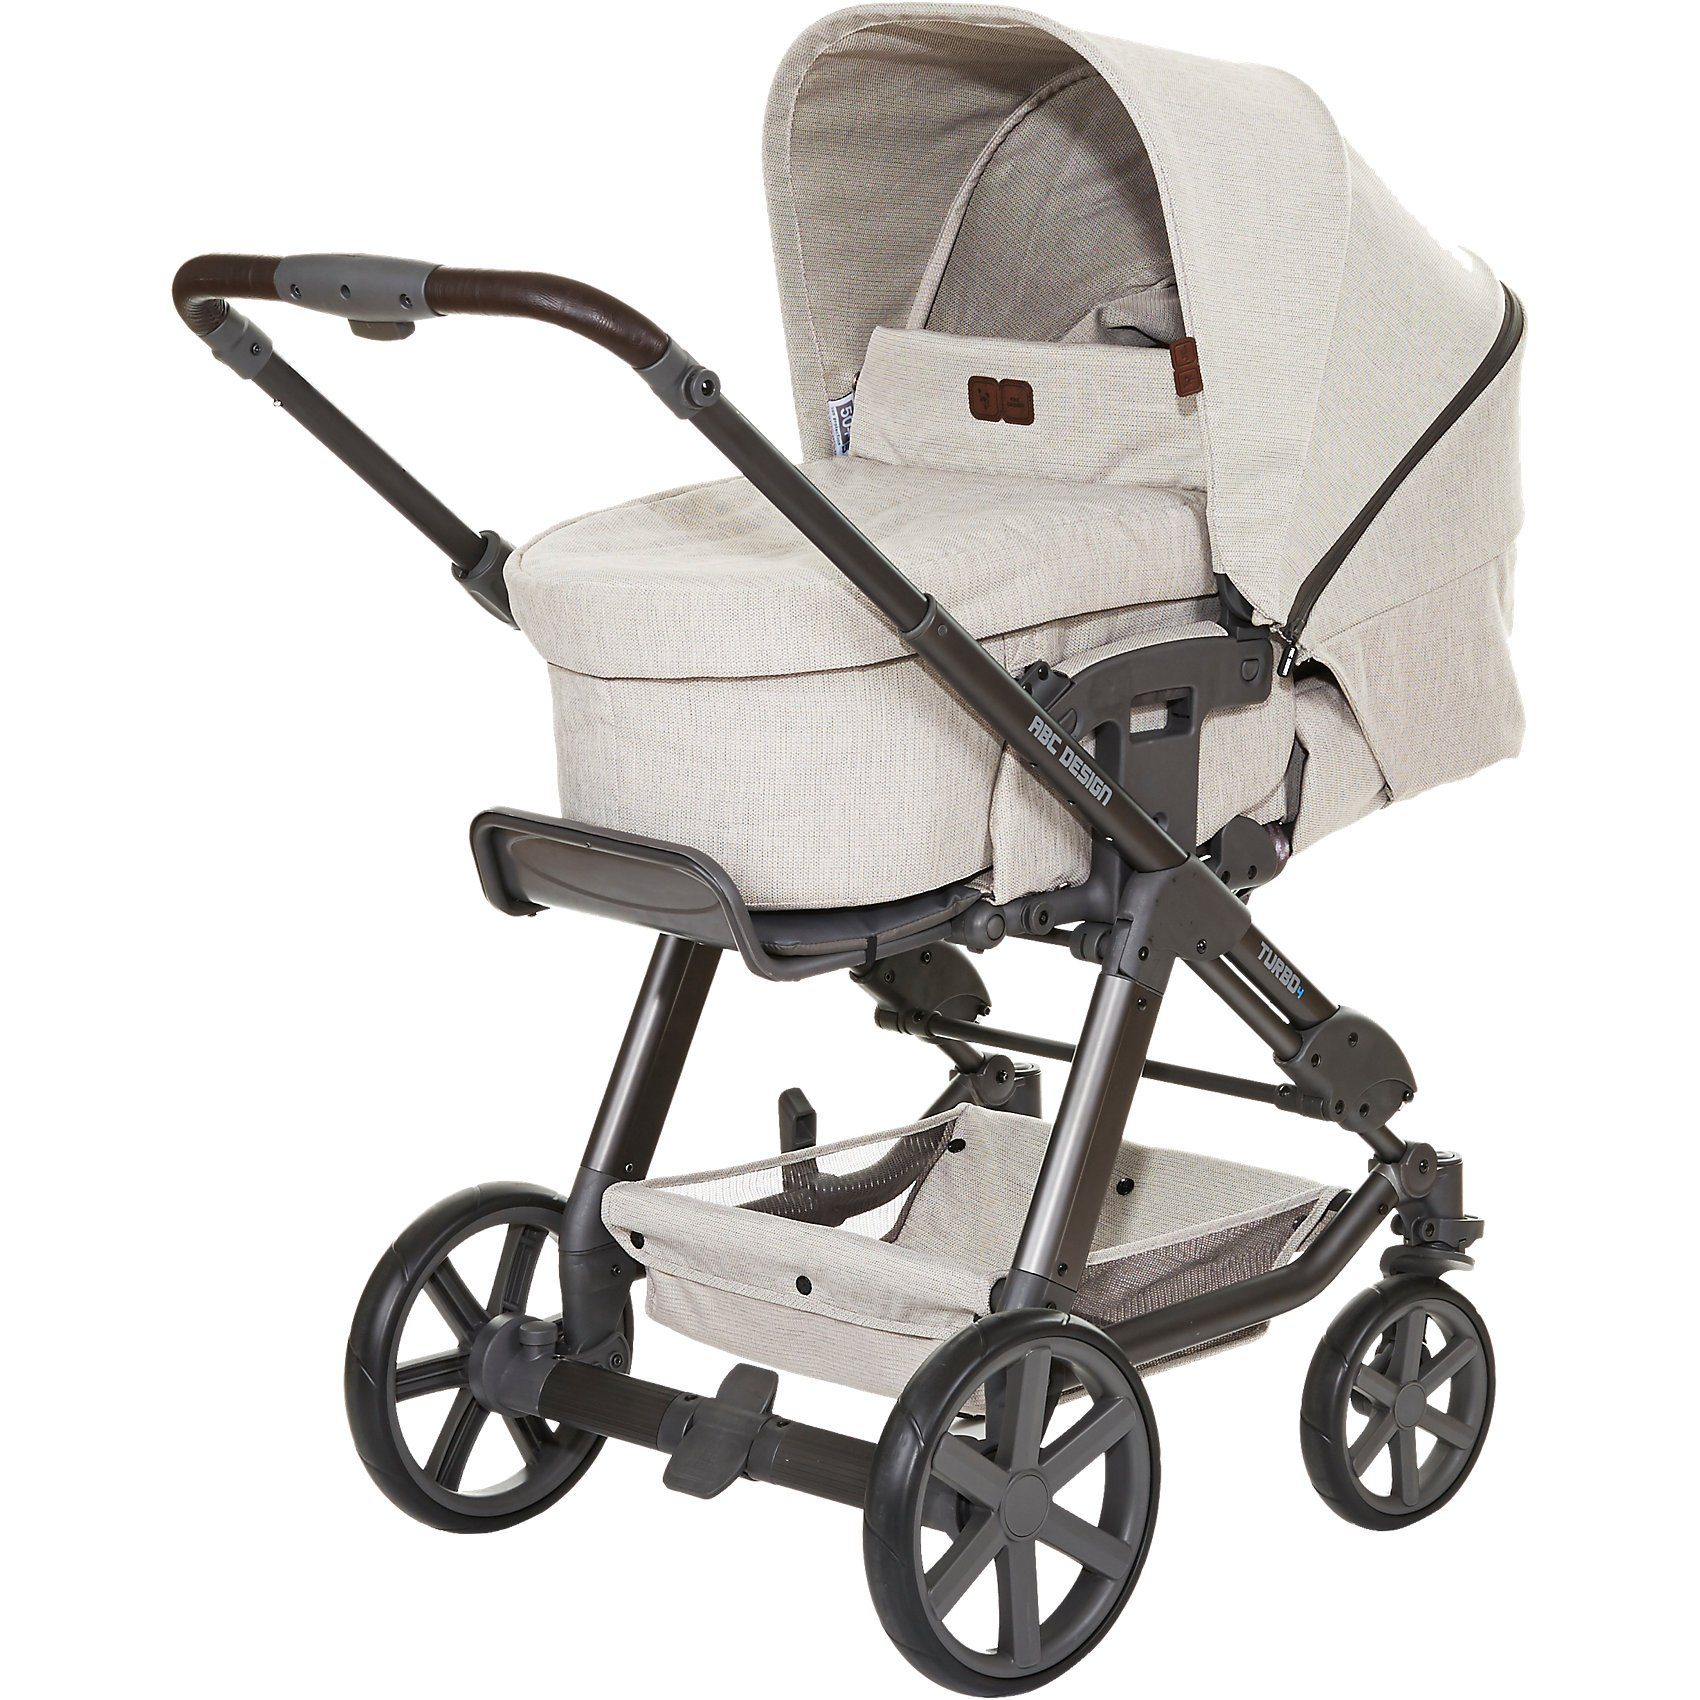 ABC Design Kombi Kinderwagen Turbo 4, camel, 2017